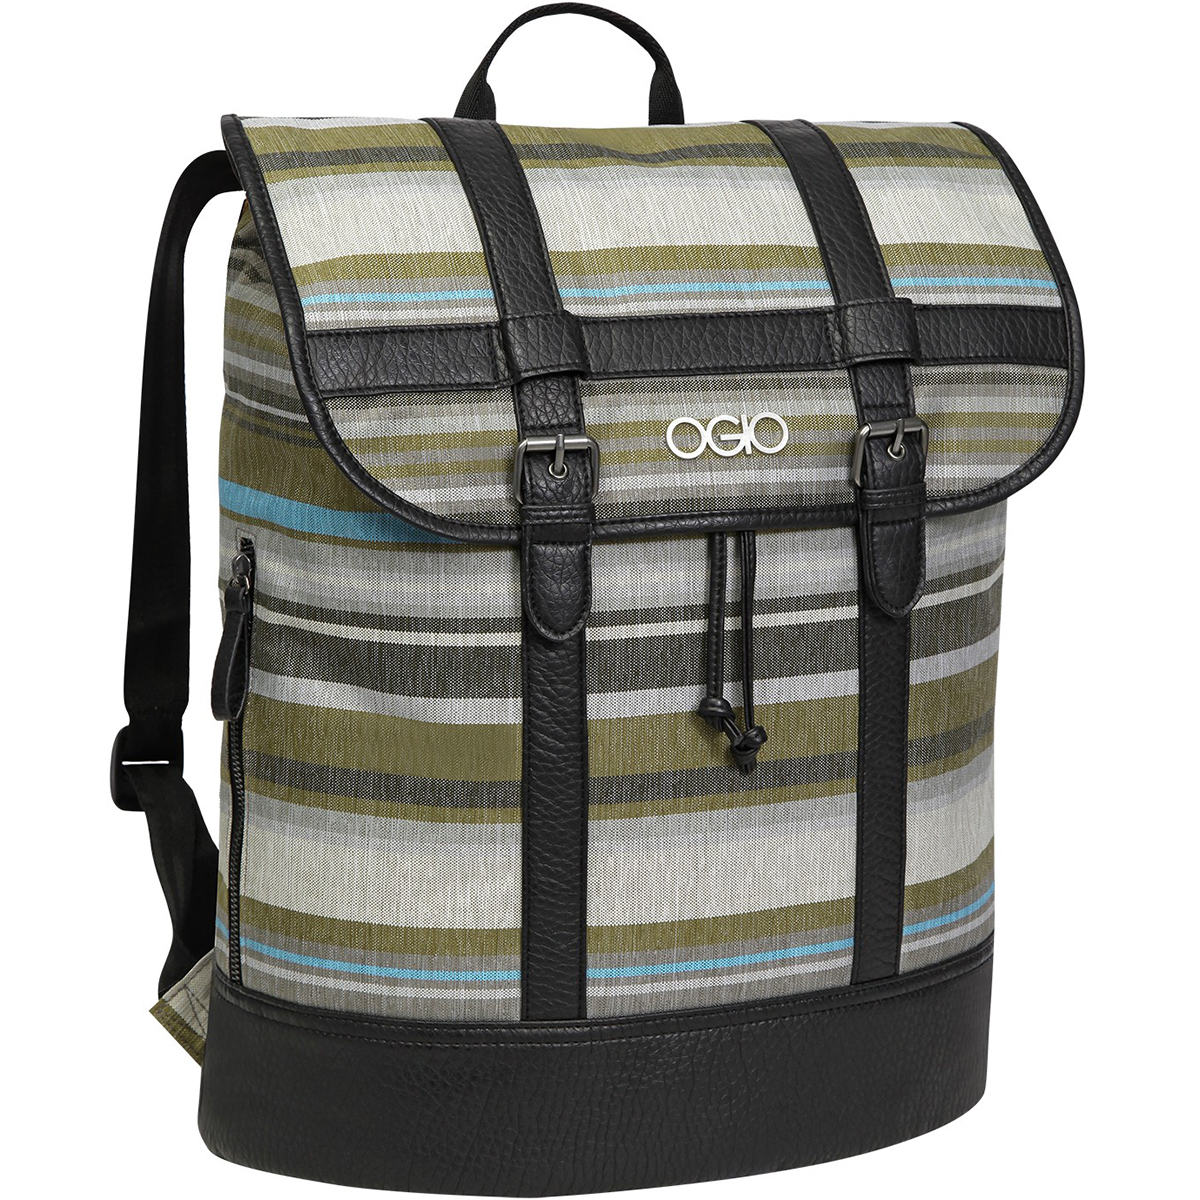 Рюкзак городской OGIO Urban. Emma Pack (A/S), цвет: серый, черный. 031652227453 hiwin taiwan made 2pcs hgr25 l 600 mm linear guide rail with 4pcs hgh25ca or hgw25ca narrow sliding block cnc part